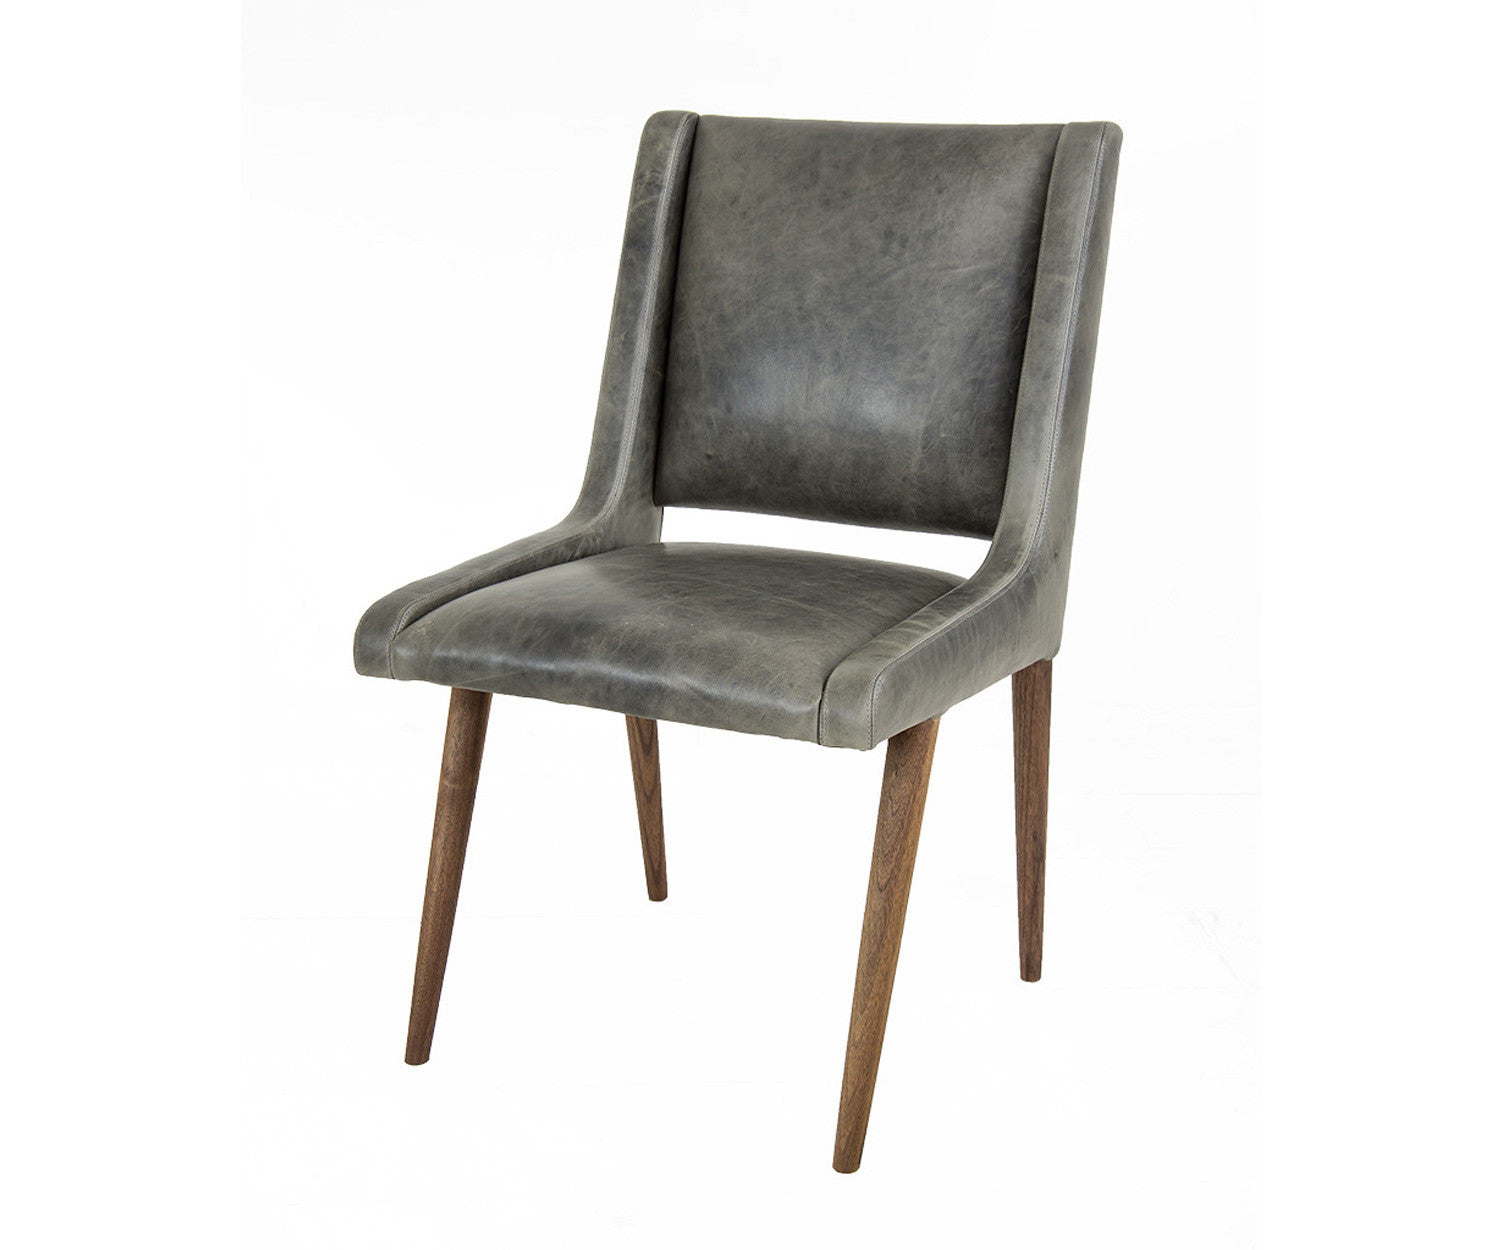 Charmant Mid Century Dining Chair In Distressed Grey Leather